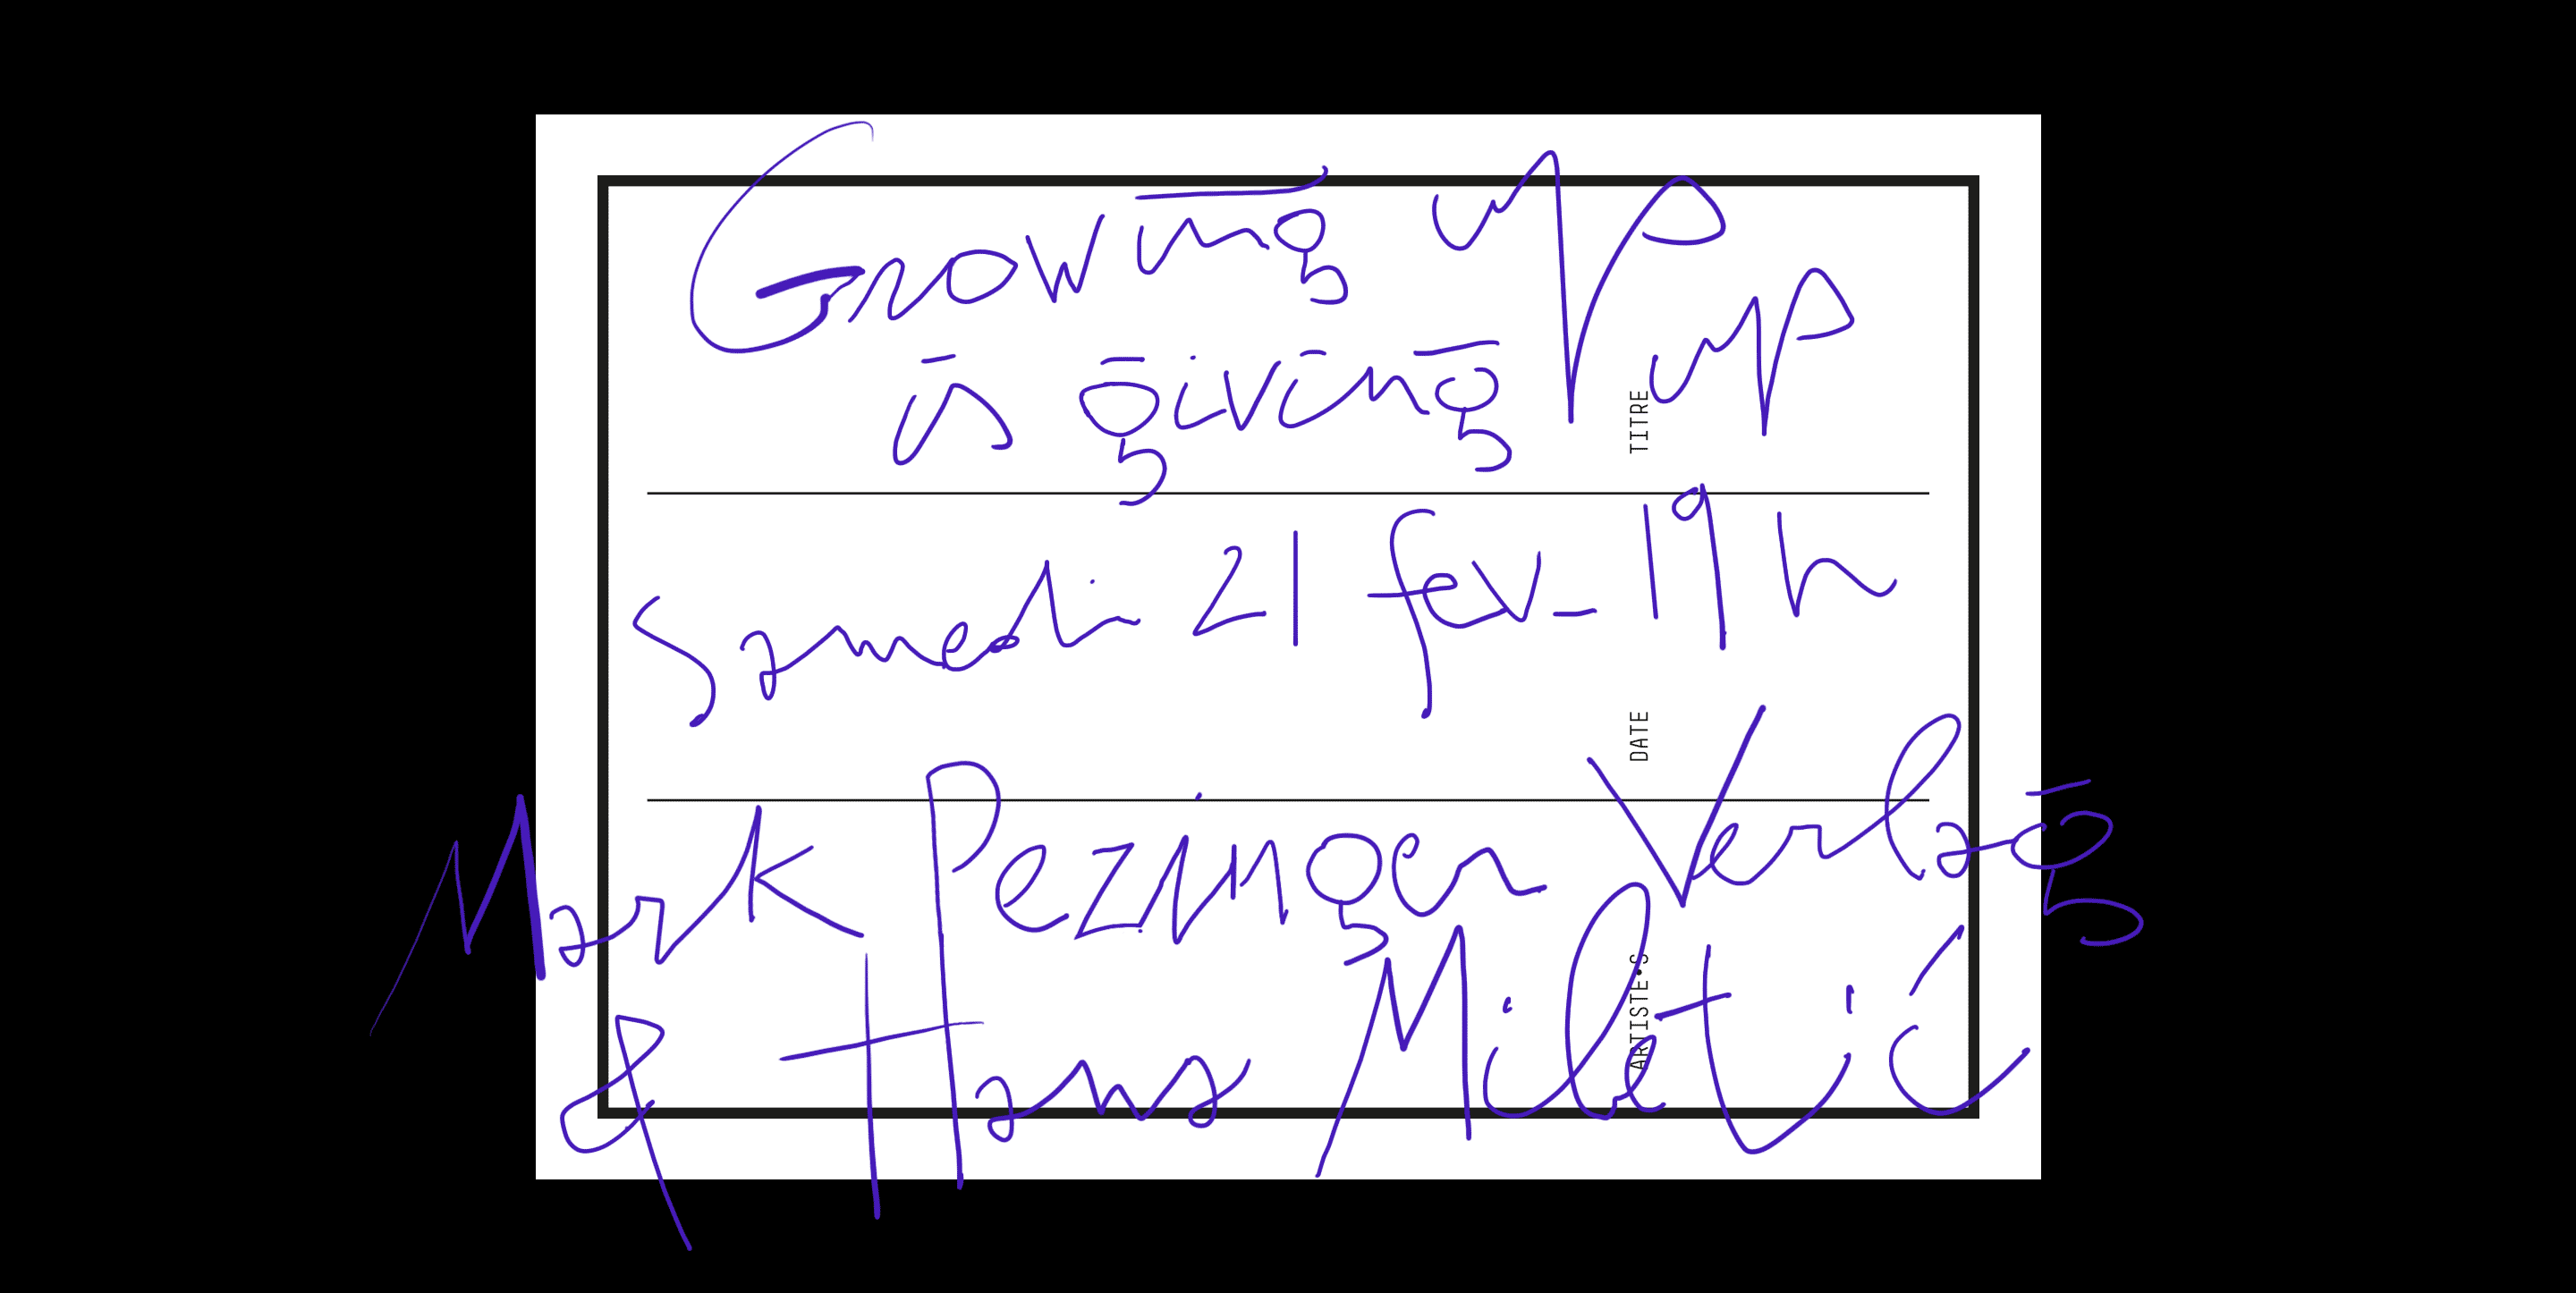 flyer_rosabrux_mark_pezinger_GROWING_UP_IS_GIVING_UP_HANA_MILETIC_flyer_clovis_duran_retina_2015